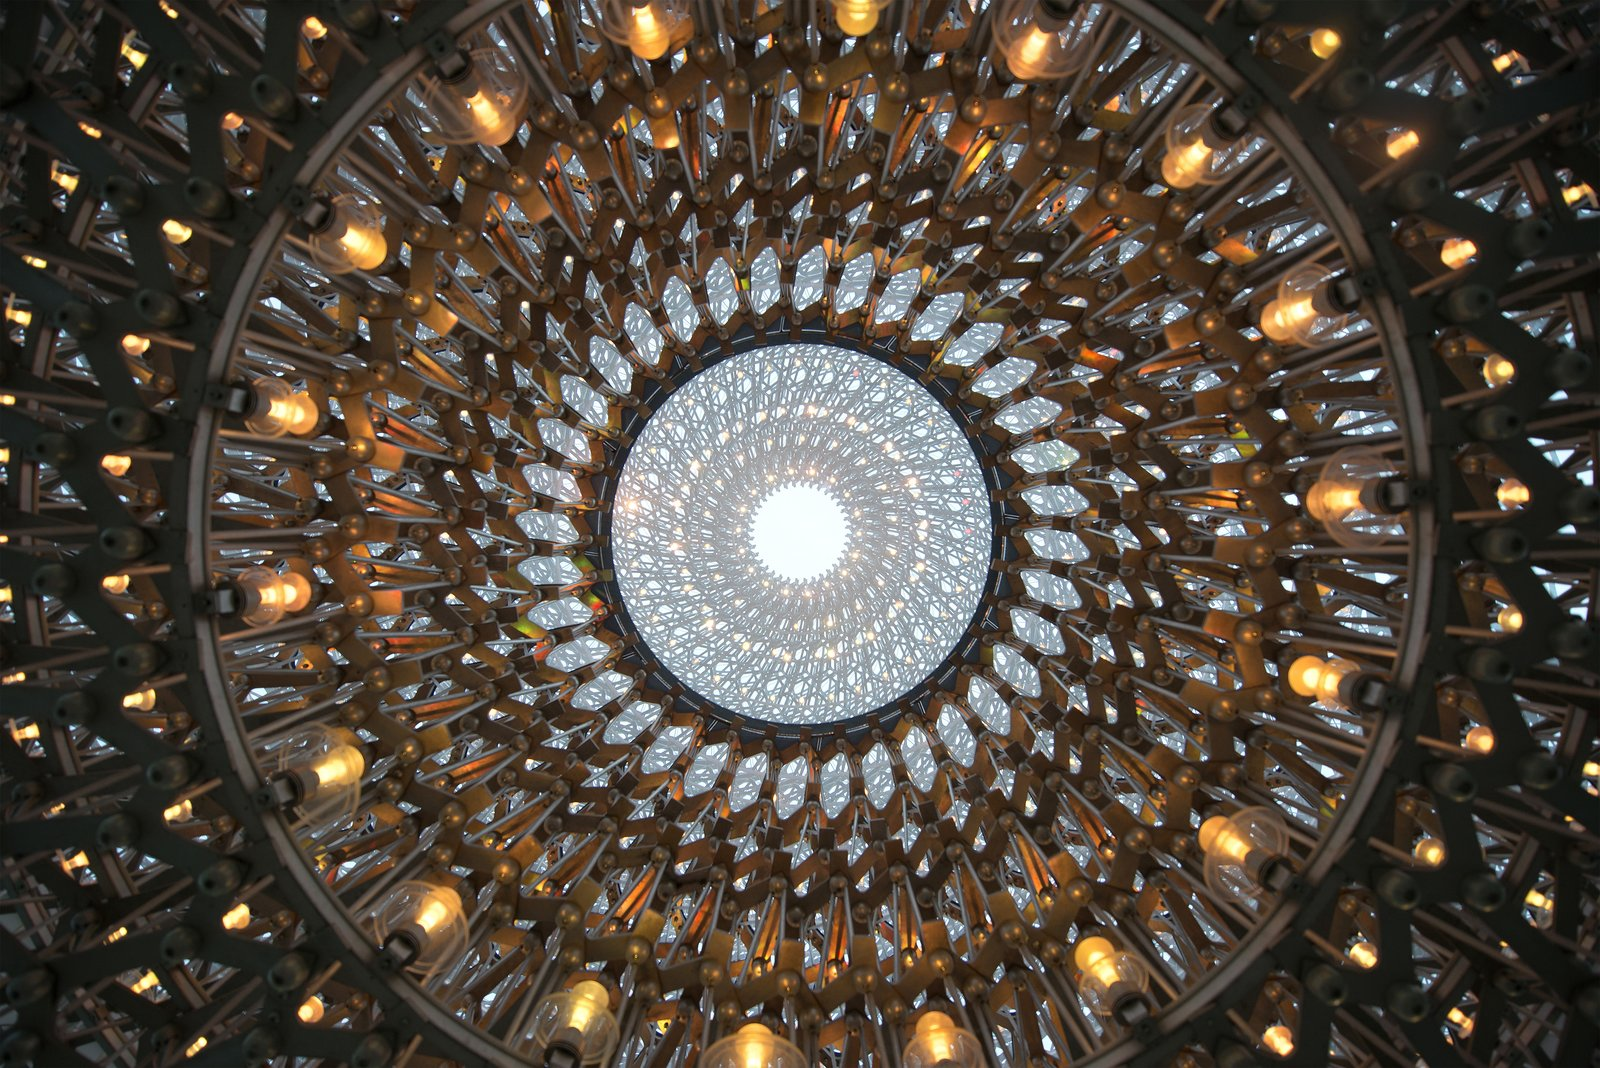 An oculus allows visitors to see the sky above.  Photo 4 of 5 in This Hive Makes Visitors a Part of the Swarm